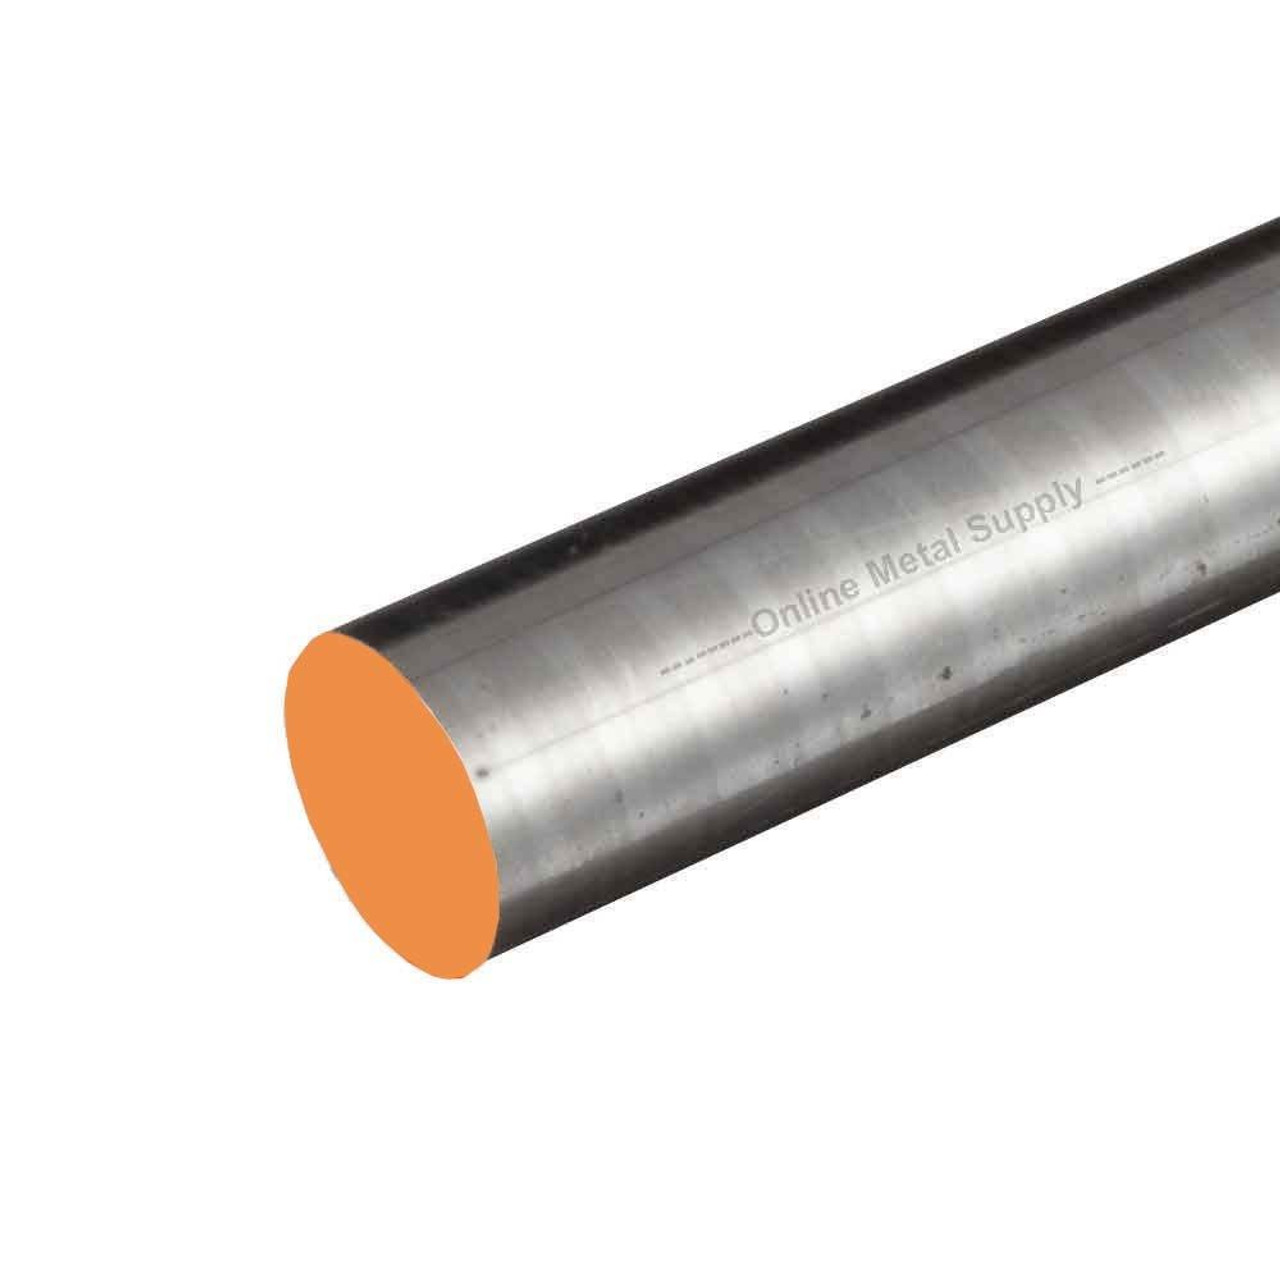 5.000 (5 inch) x 4 inches, 416 RT Stainless Steel Round Rod